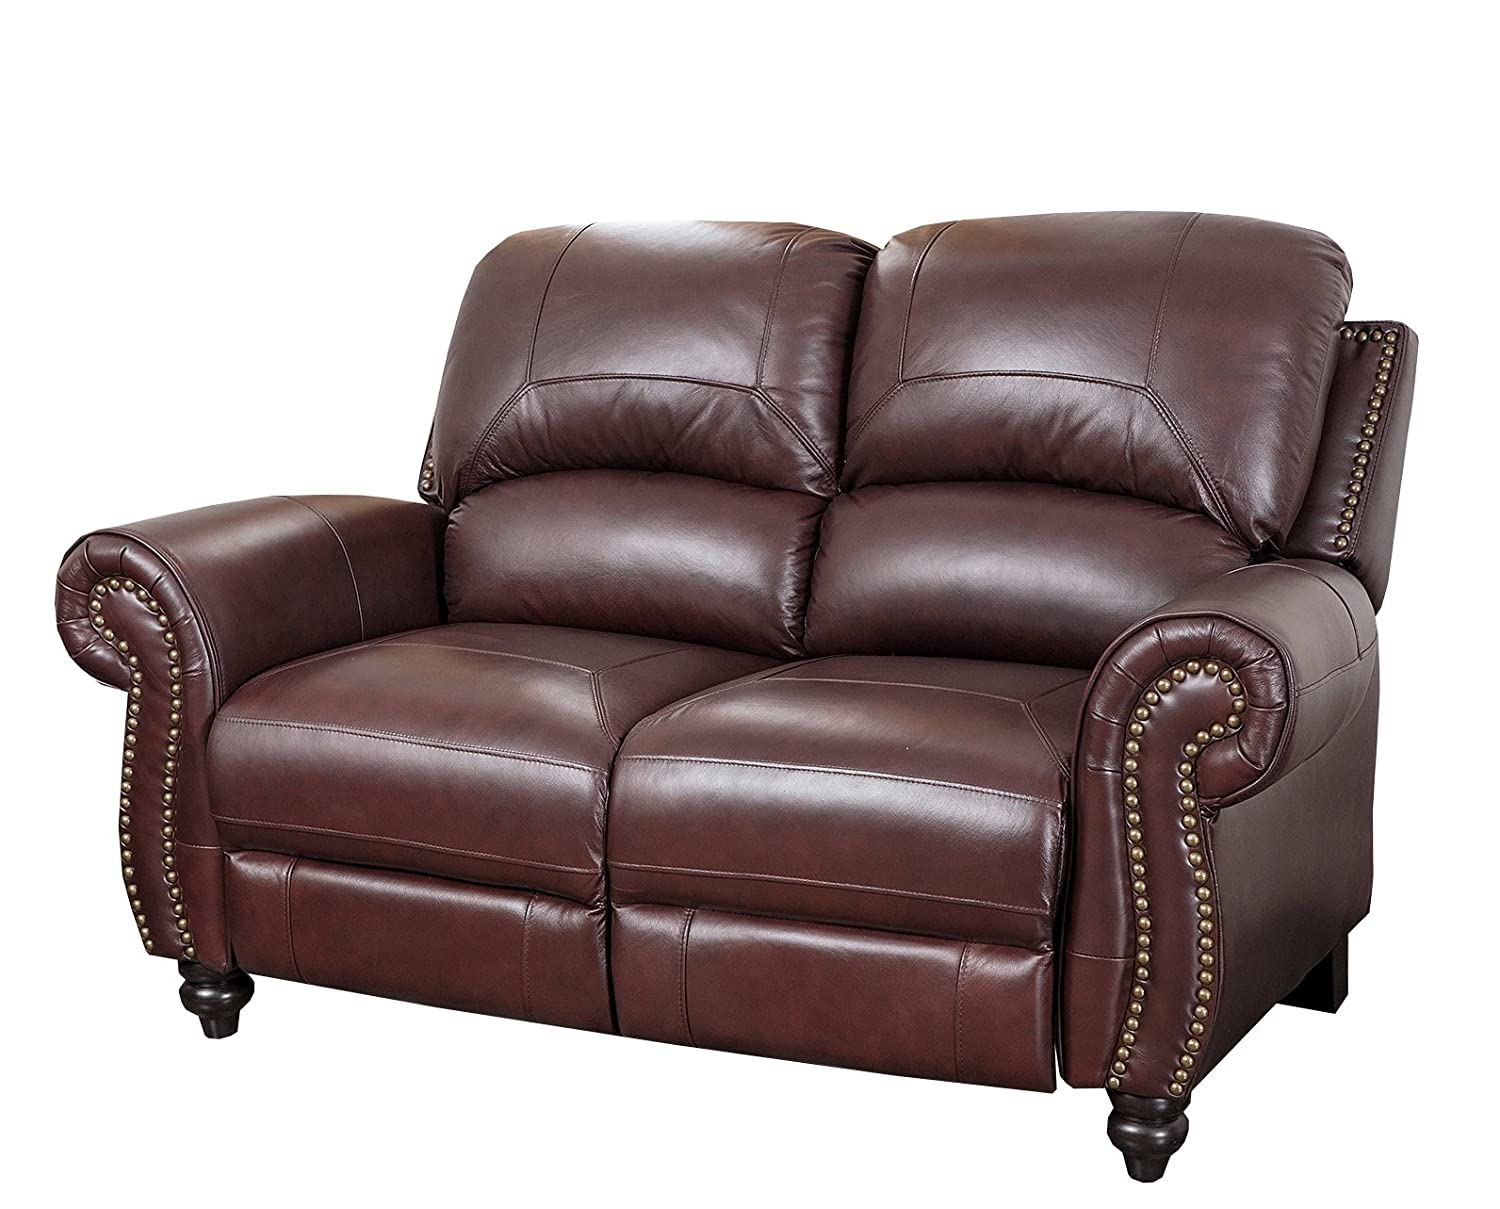 Abbyson Living Durham Leather Pushback Reclining Loveseat